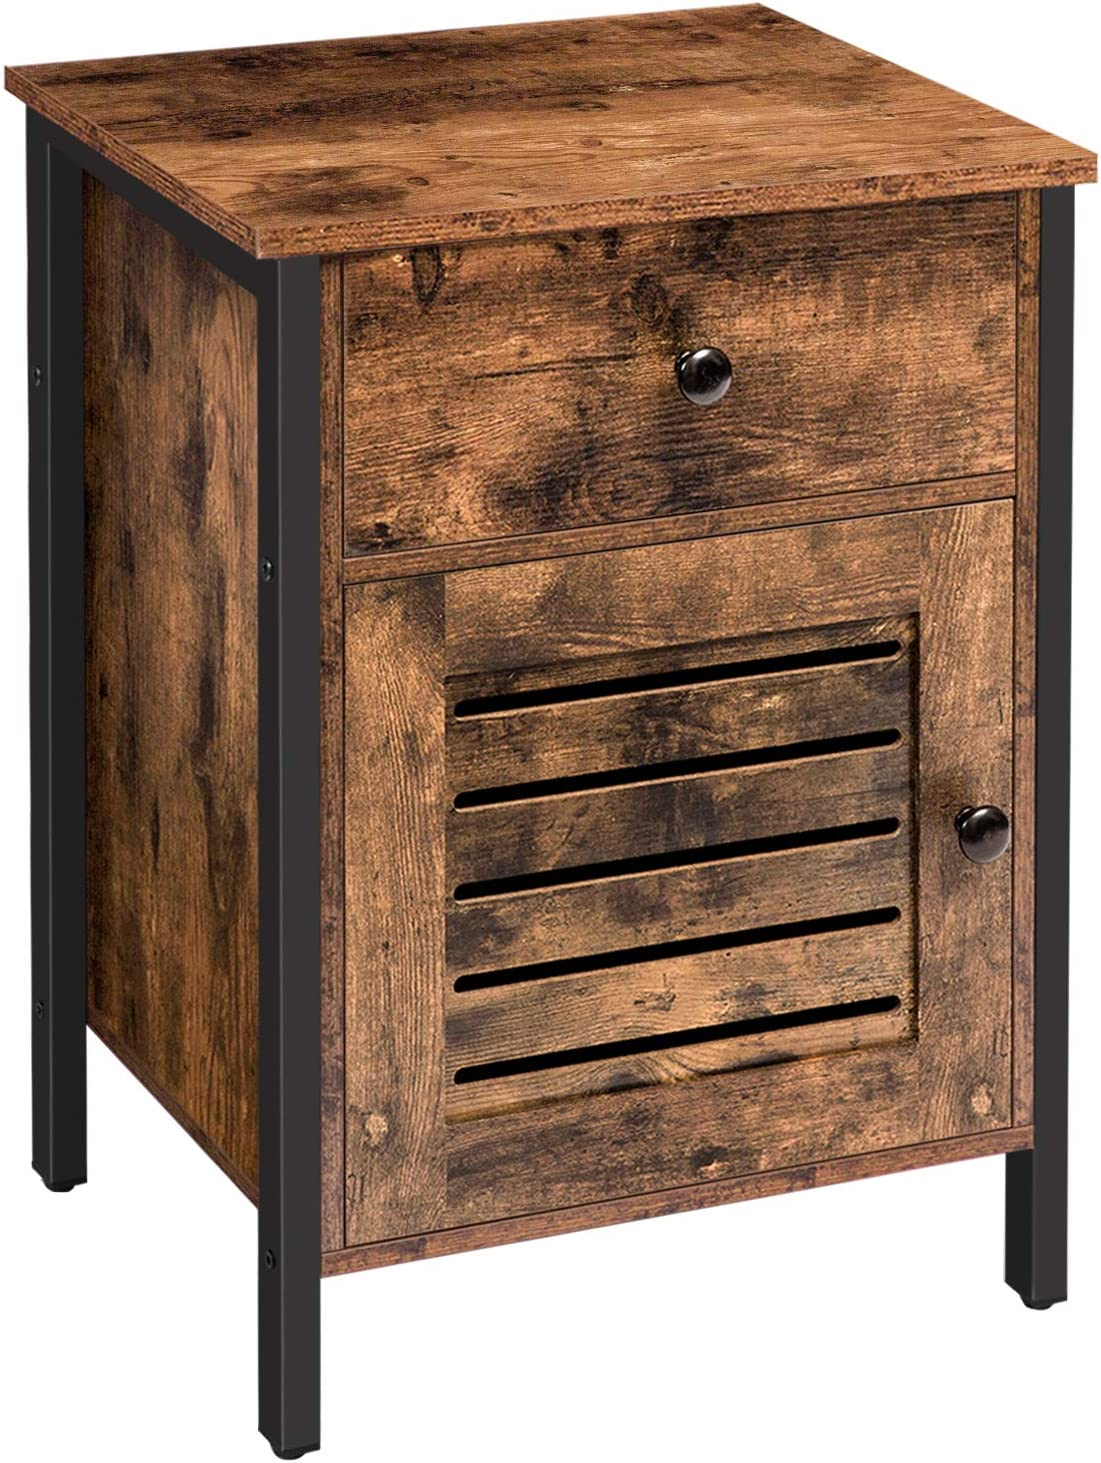 HOOBRO Nightstand, End Table with Storage Cabinet and Drawer, Retro Industrial Bedside Table with Switchable Door, for Home, Bedroom, Metal Frame, Easy Assembly, Rustic Brown BF86BZ01